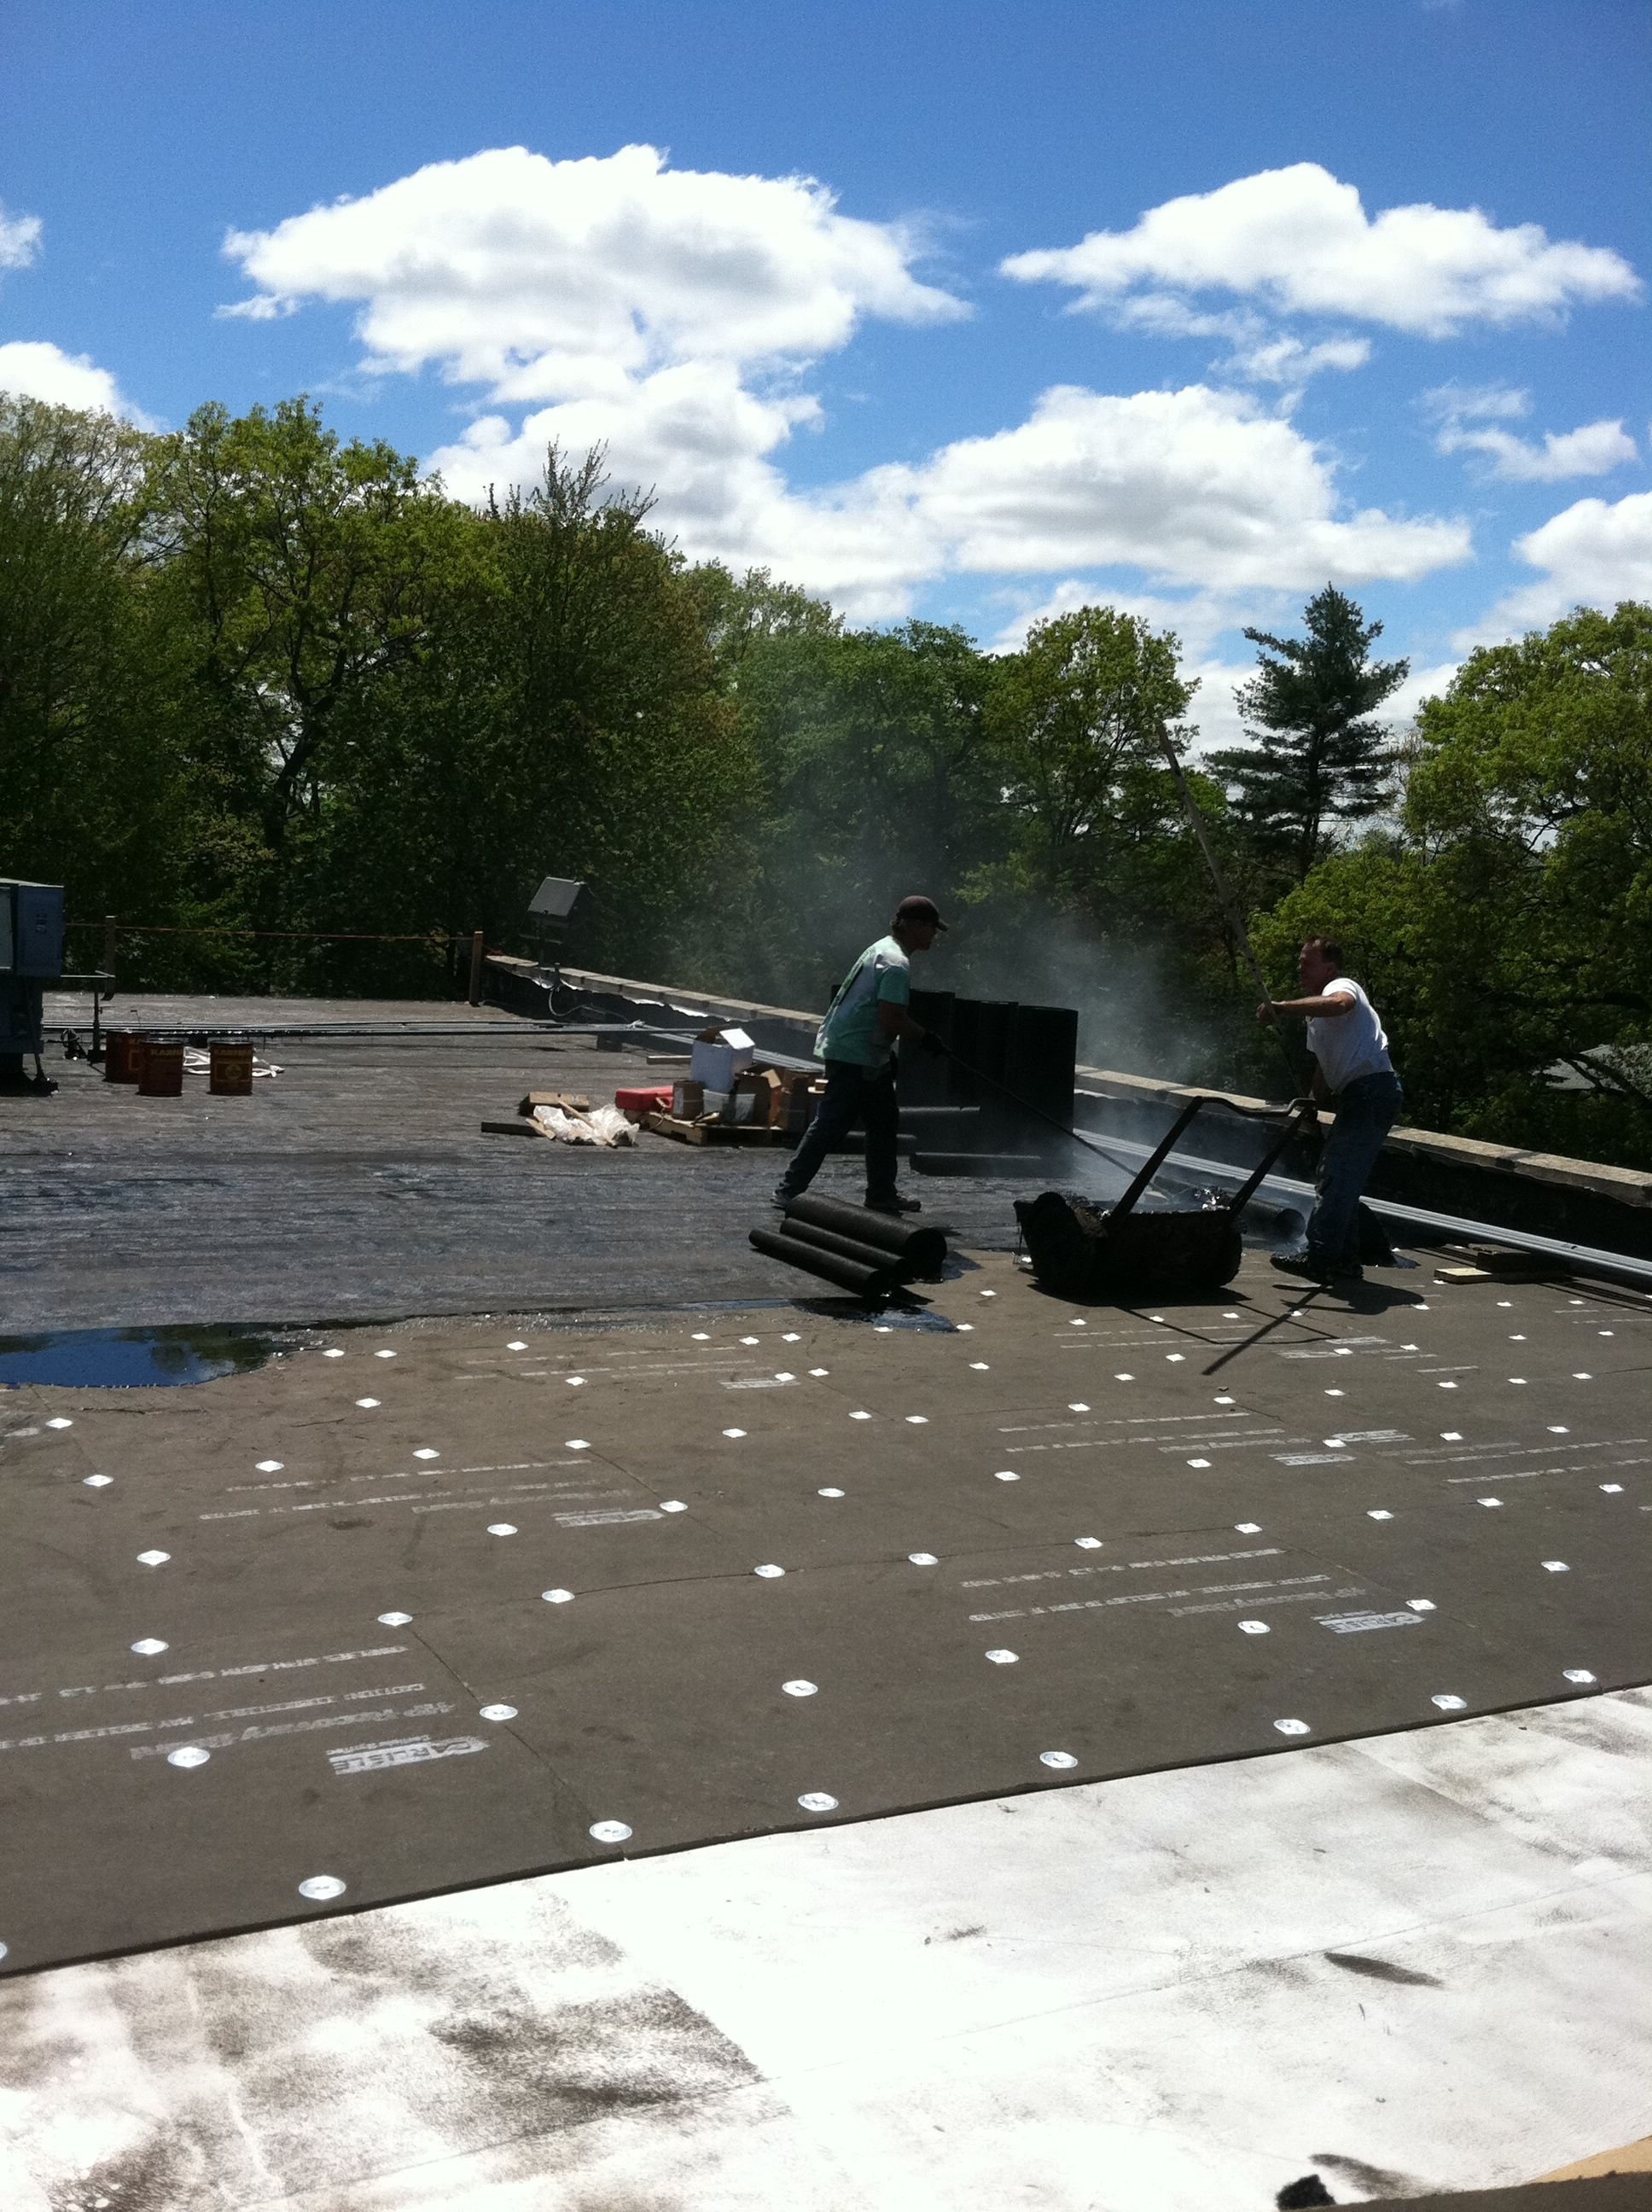 Roofing Tar Hot Tar Flat Roofing Long Island Nillcontracting